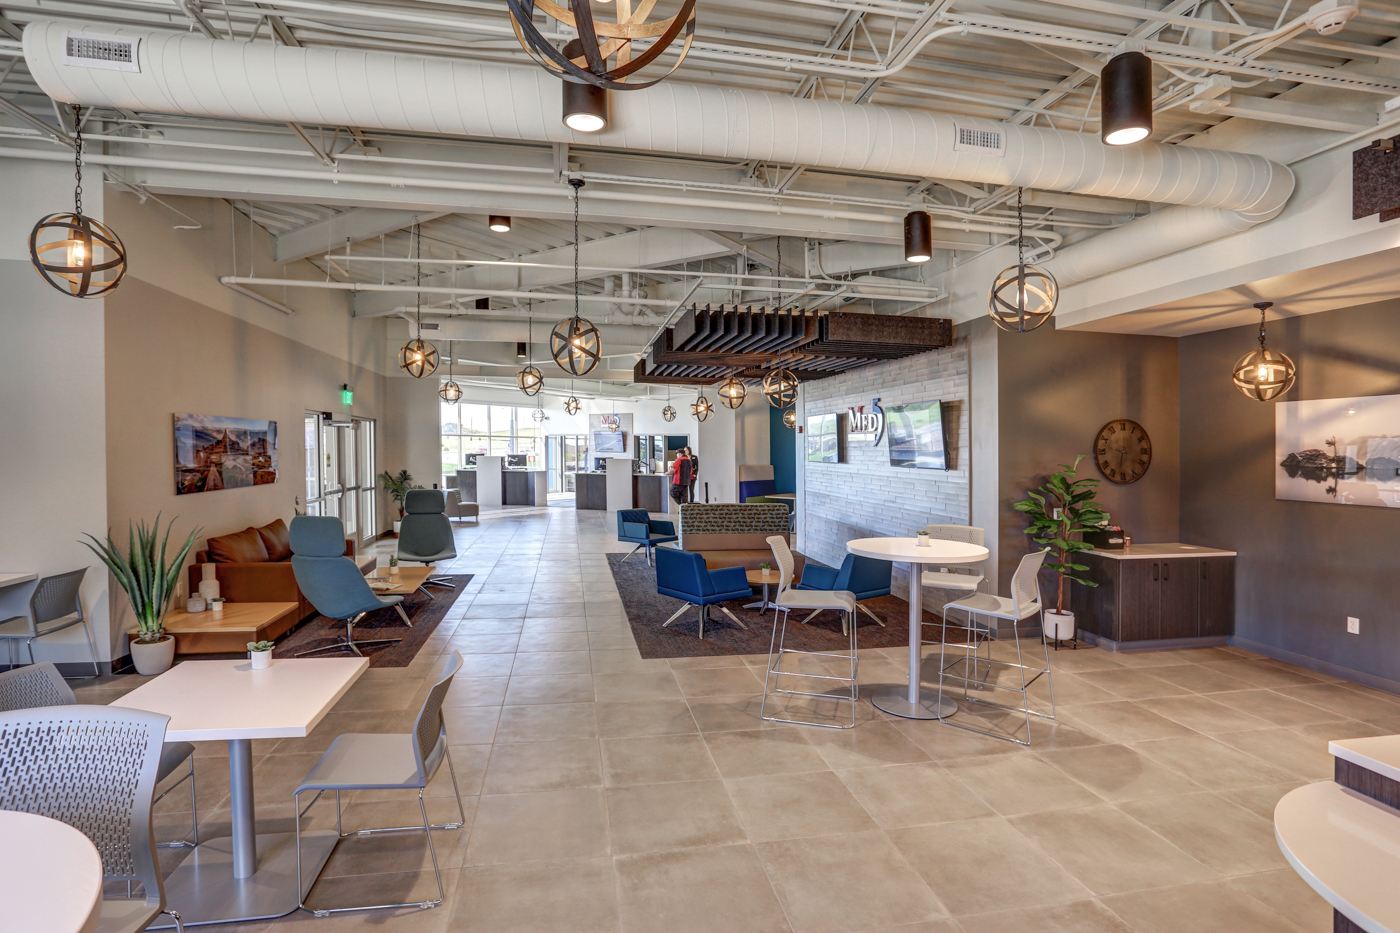 Med5 Credit Union Interior Space